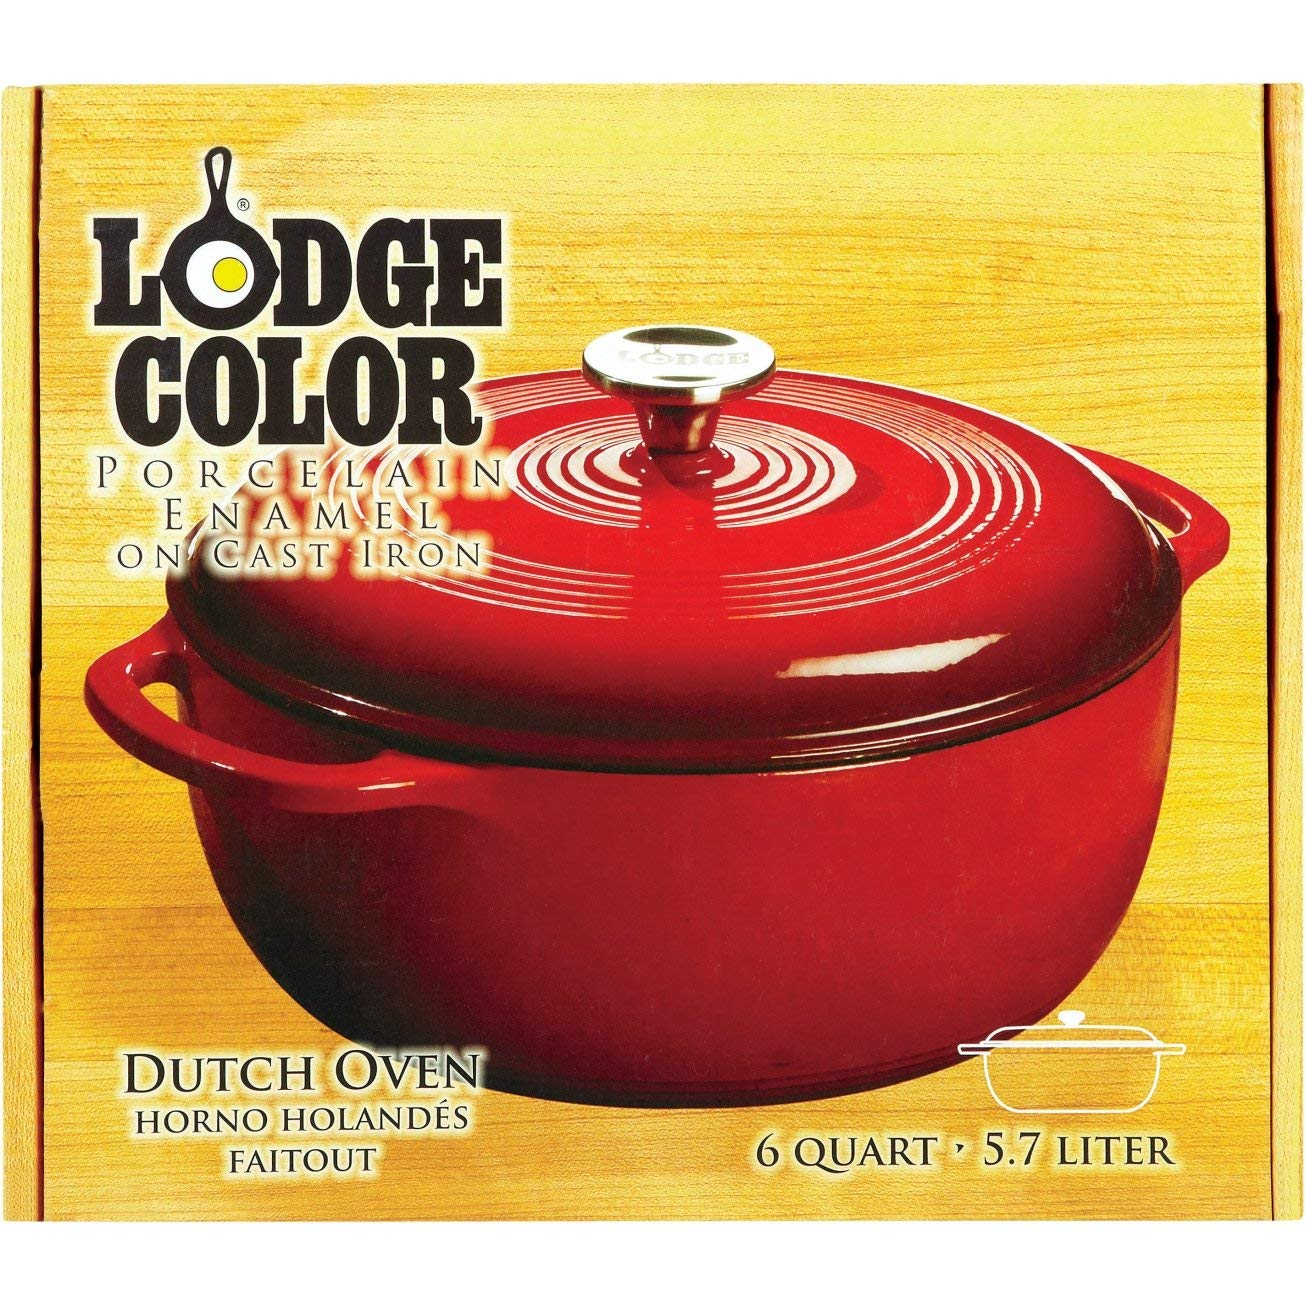 Lodge 6 Quart Enameled Cast Iron Dutch Oven. Classic Red Enamel Dutch Oven (Island Spice Red) by Lodge